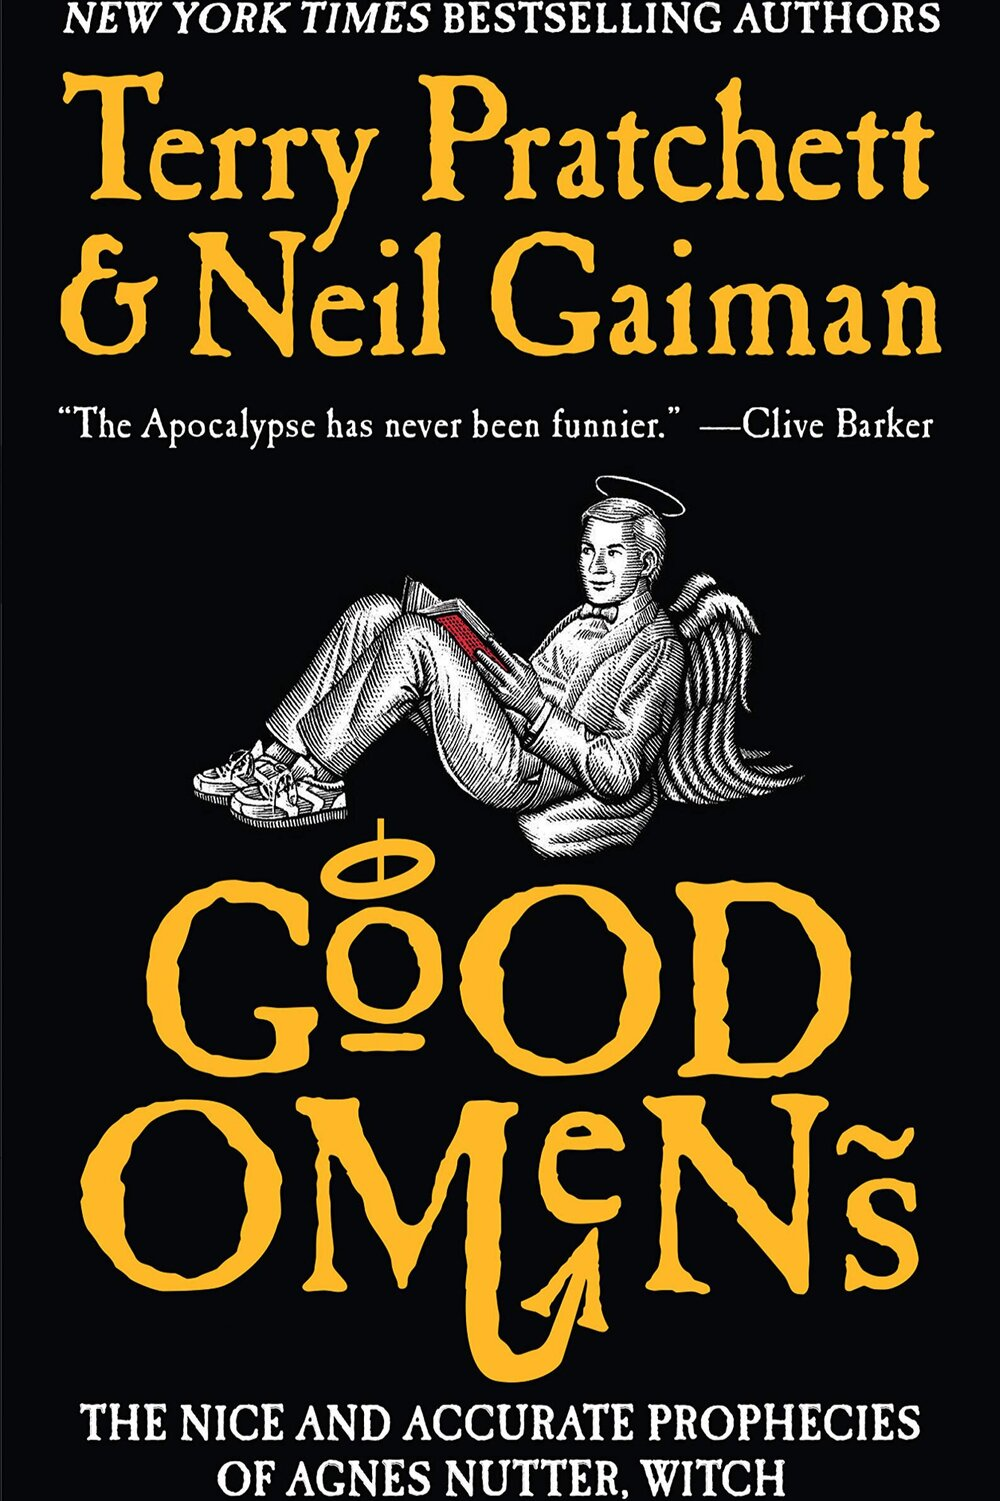 Good Omens (Terry Pratchett & Neil Gaiman)